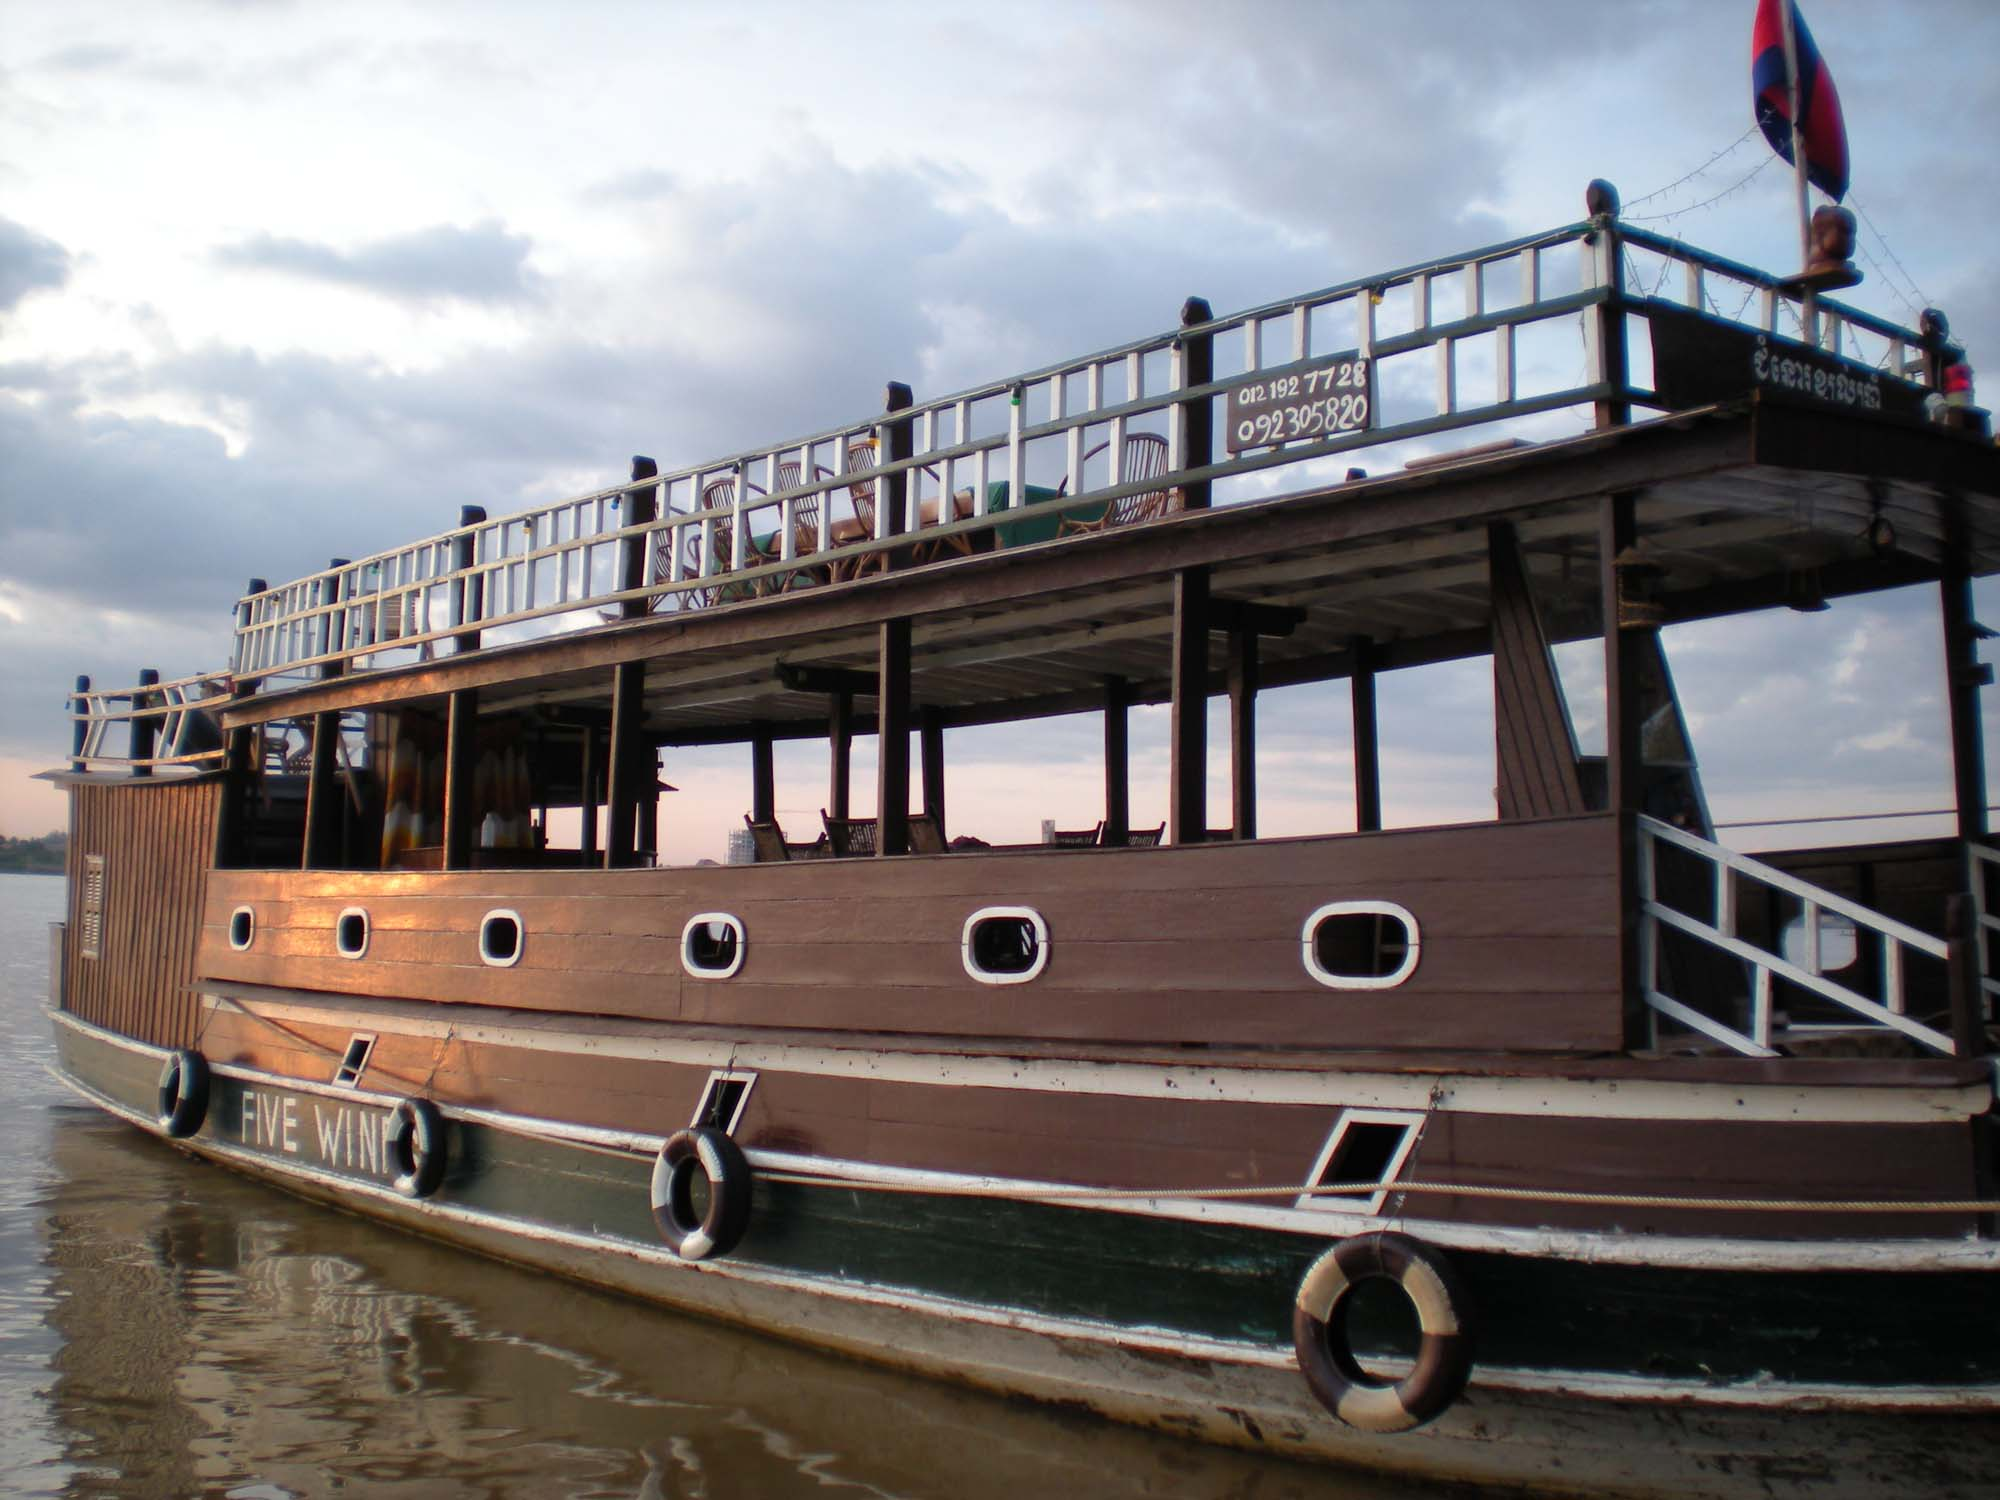 Mekong River Boat Tour